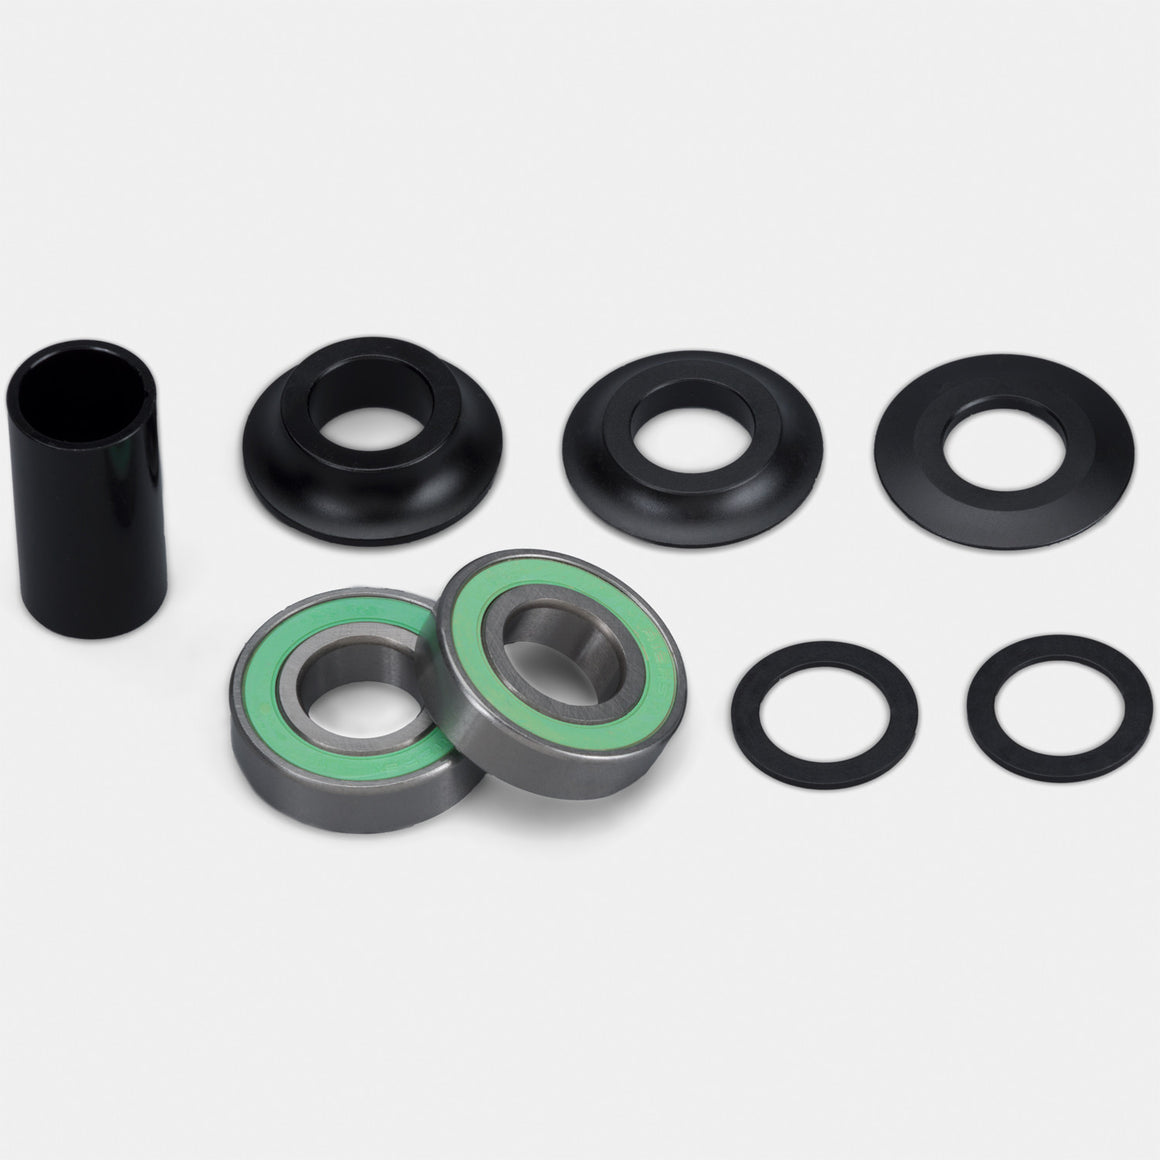 Verde BMX Mid bottom bracket kit — 19mm or 22mm